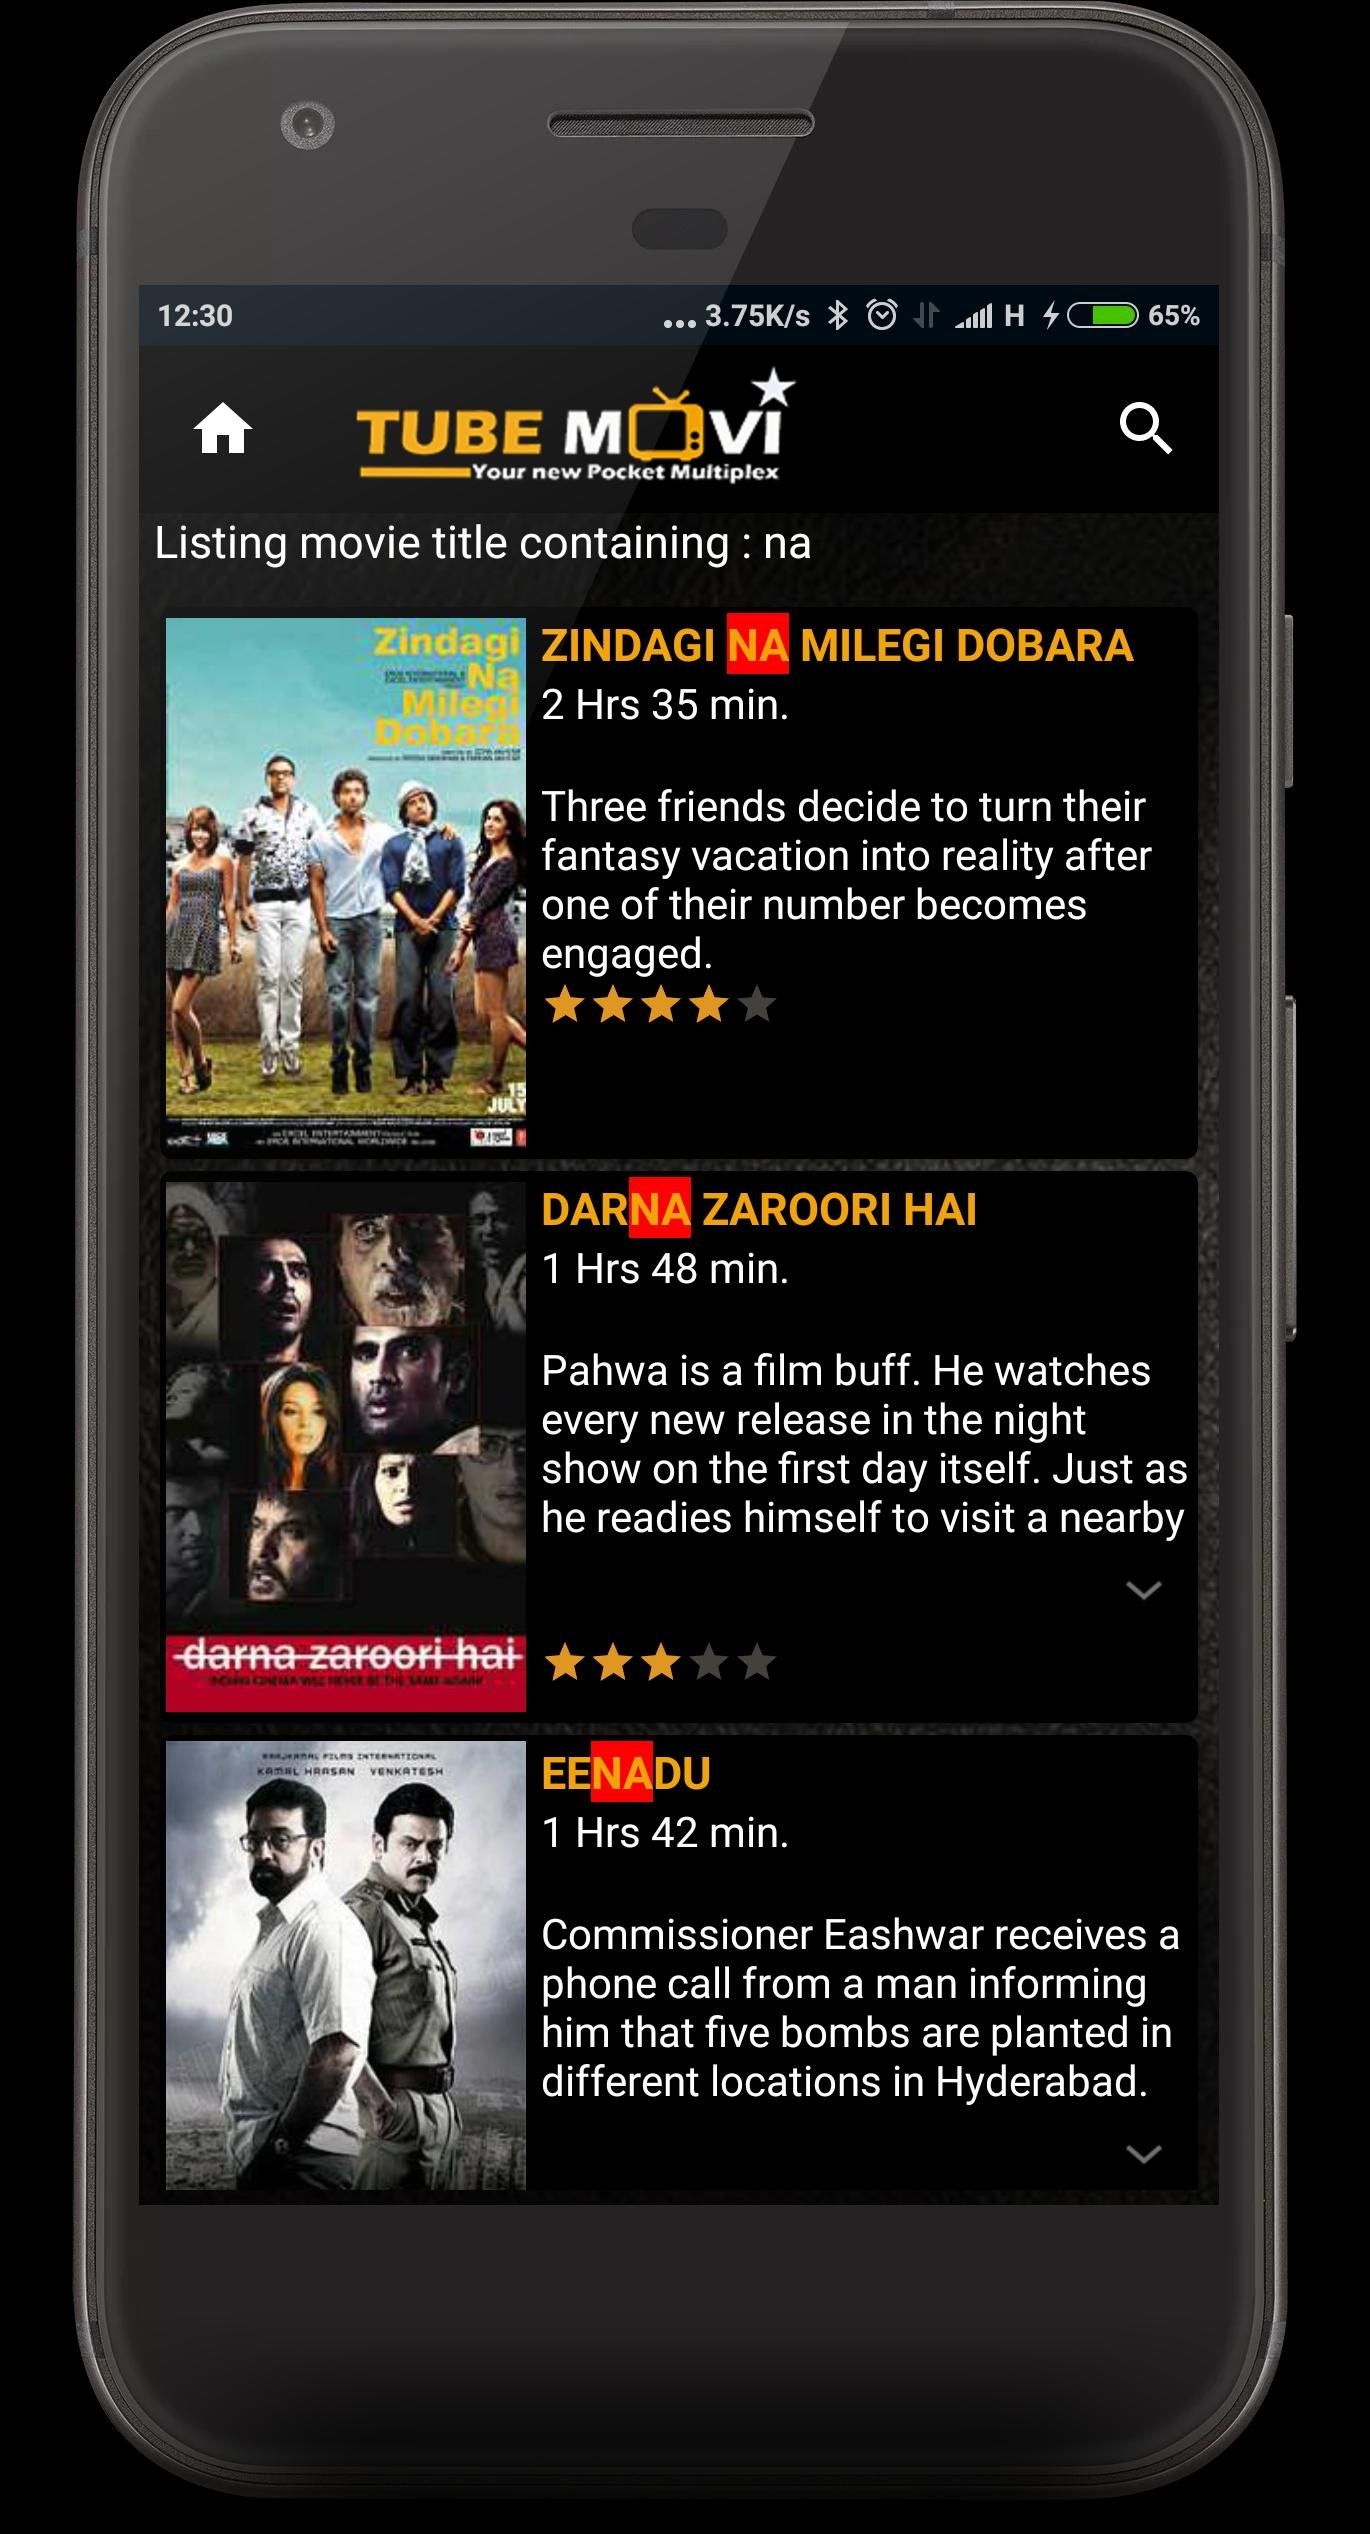 TubeMovie - Watch movies online free for Android - APK Download